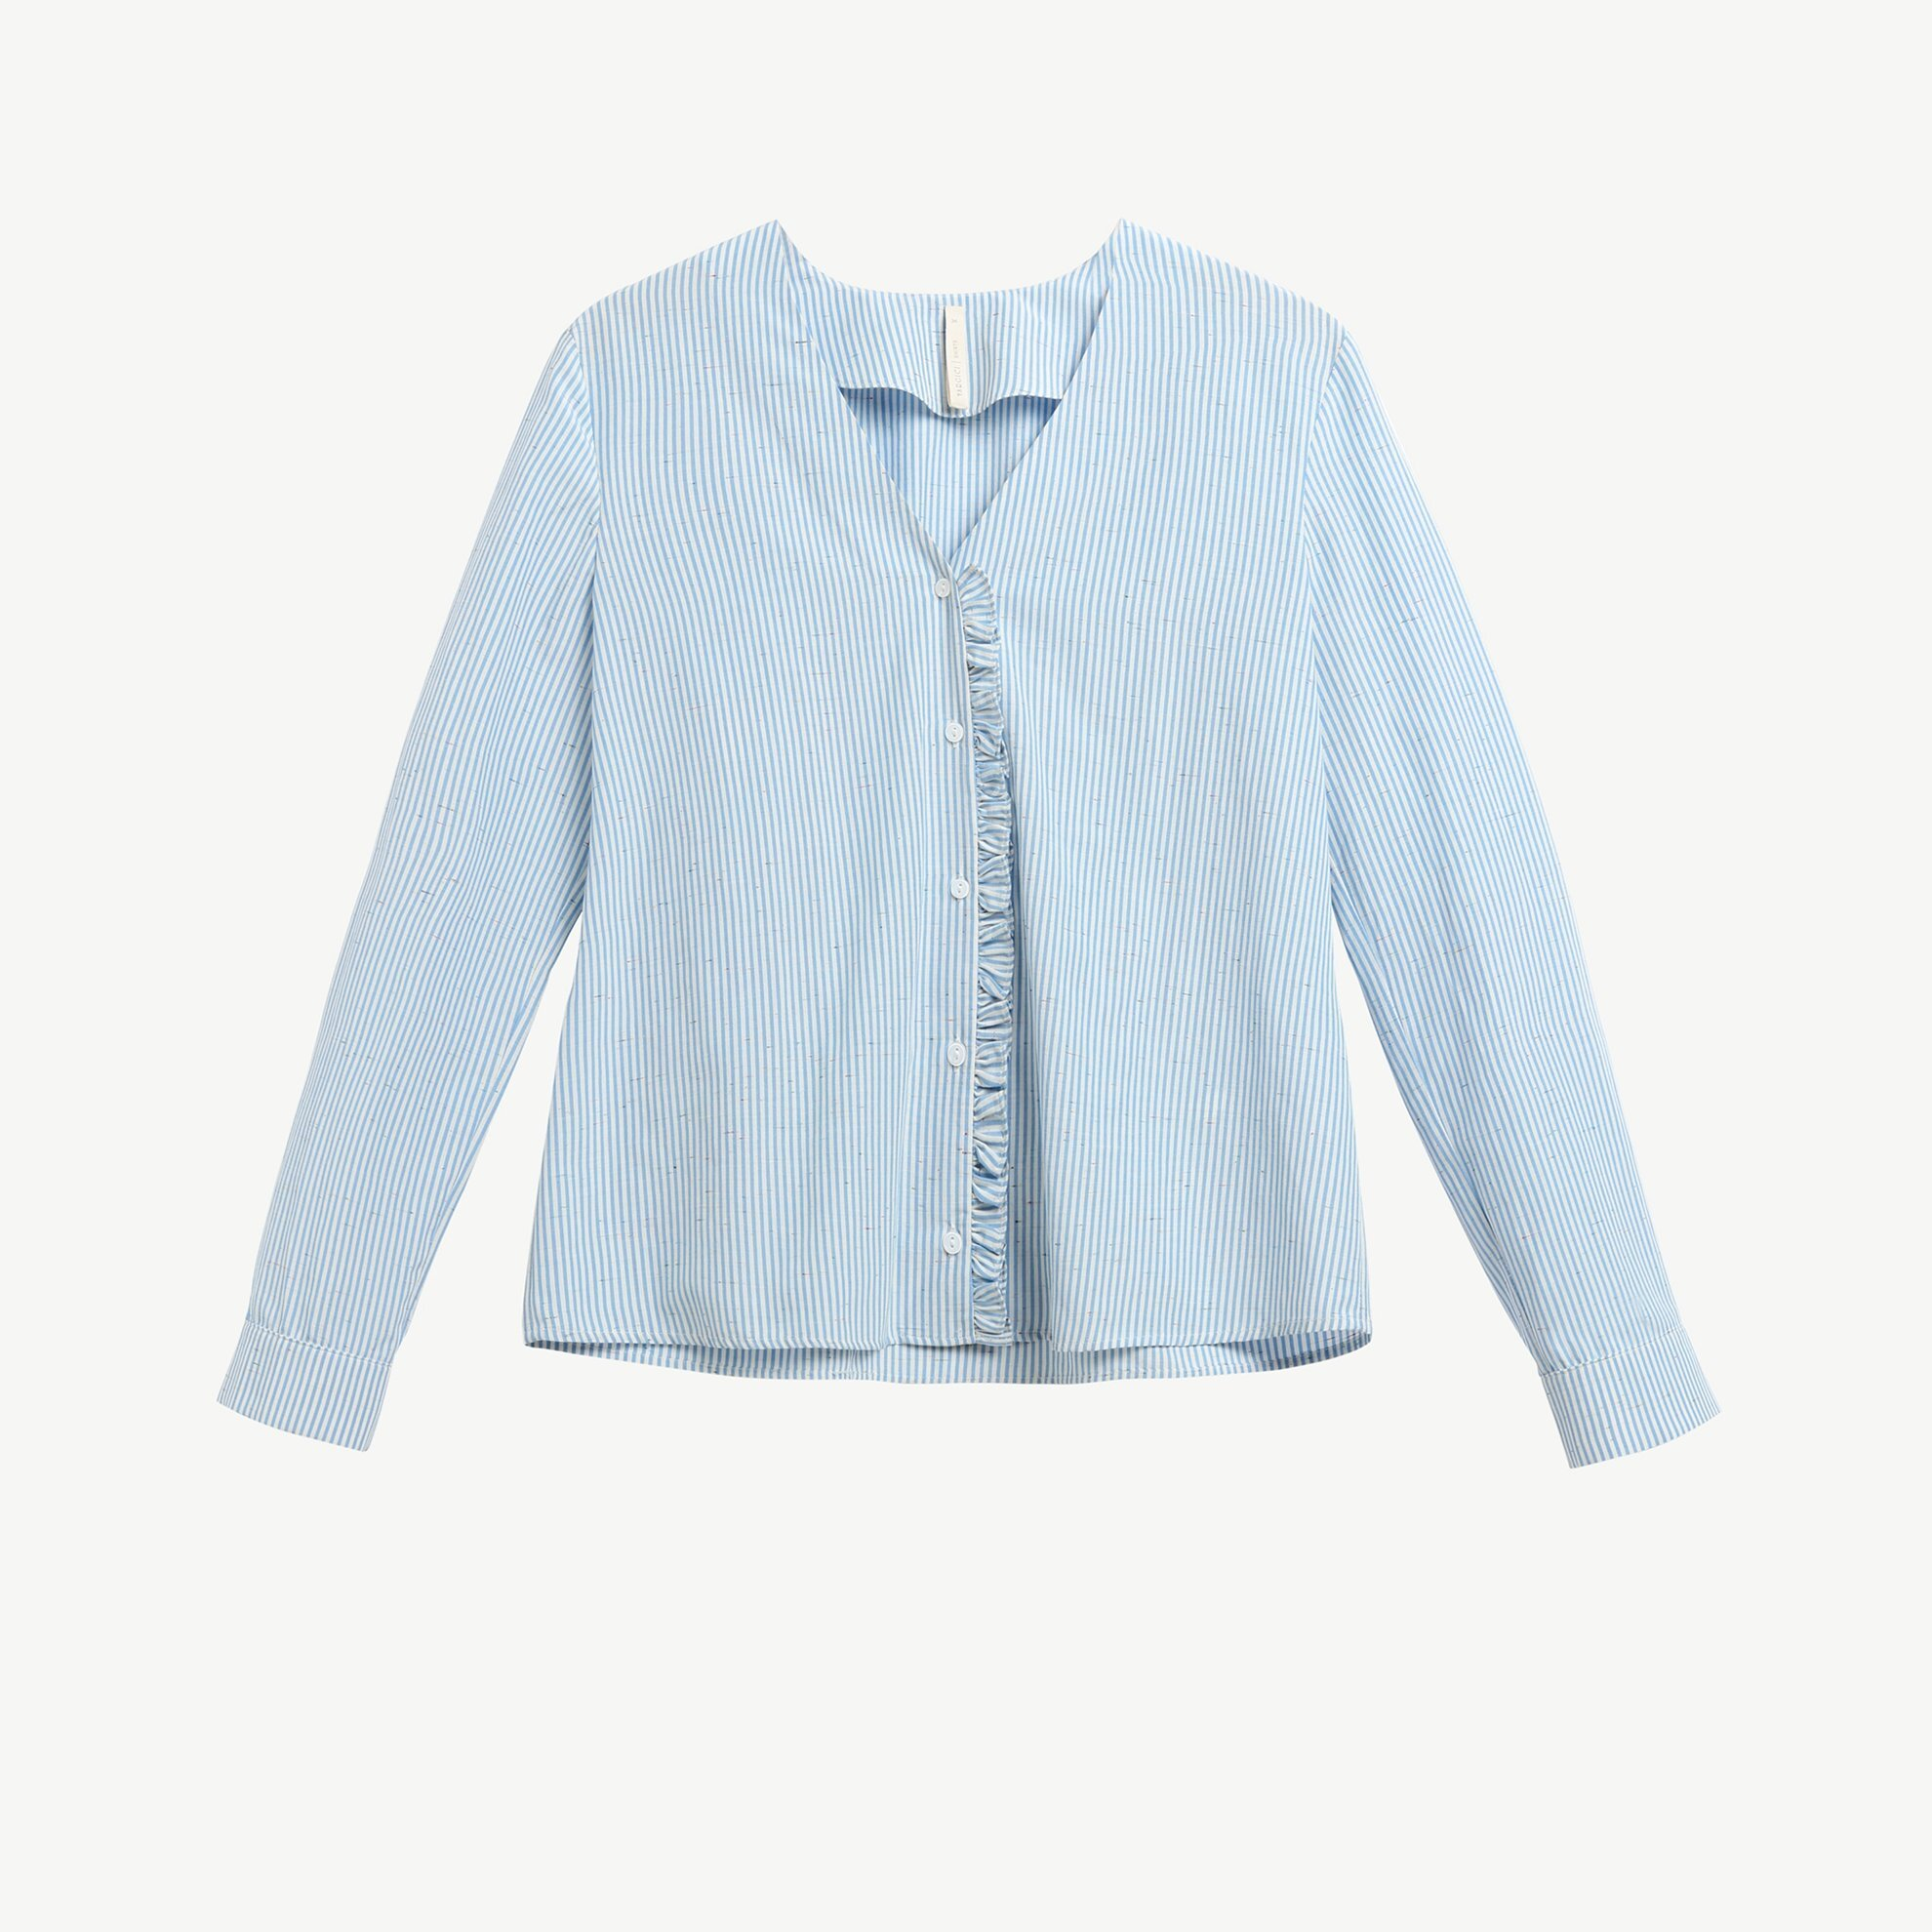 Ruffle Detail Shirt